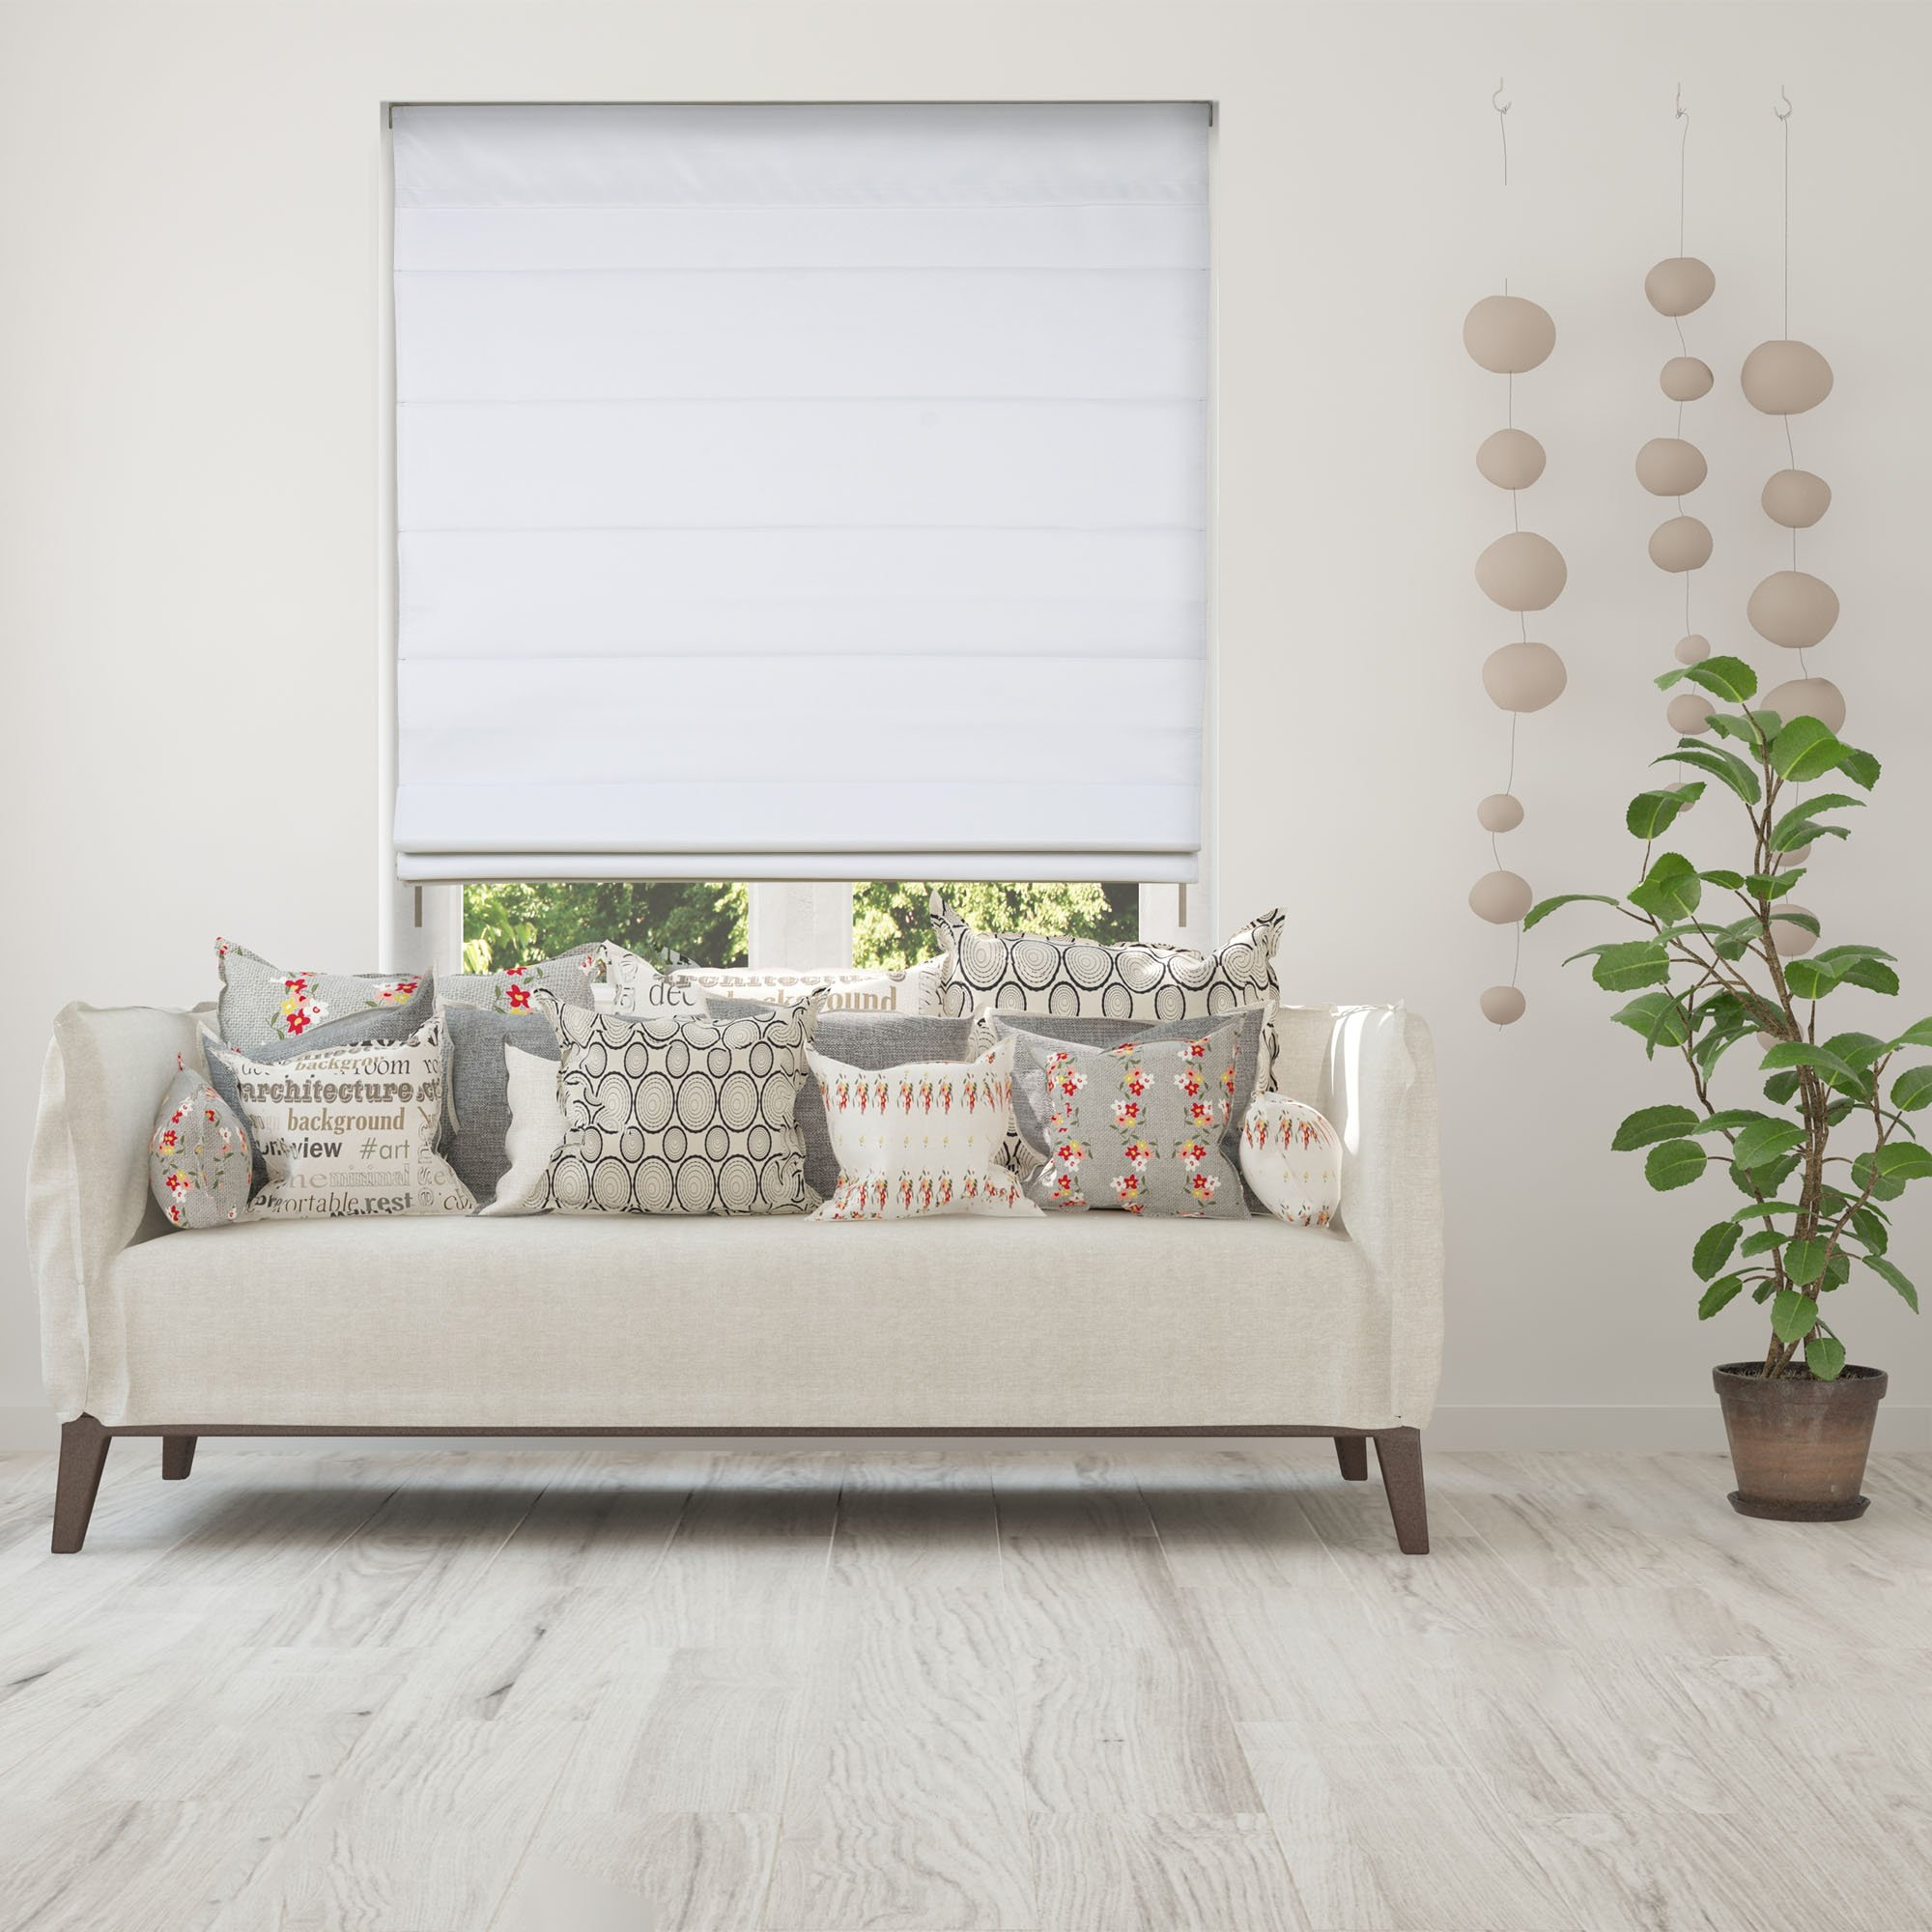 Calyx Interiors Cordless Lift Fabric Roman Shades in Size 34-Inch Width x 60-Inch Height Color Blackout White by Calyx Interiors